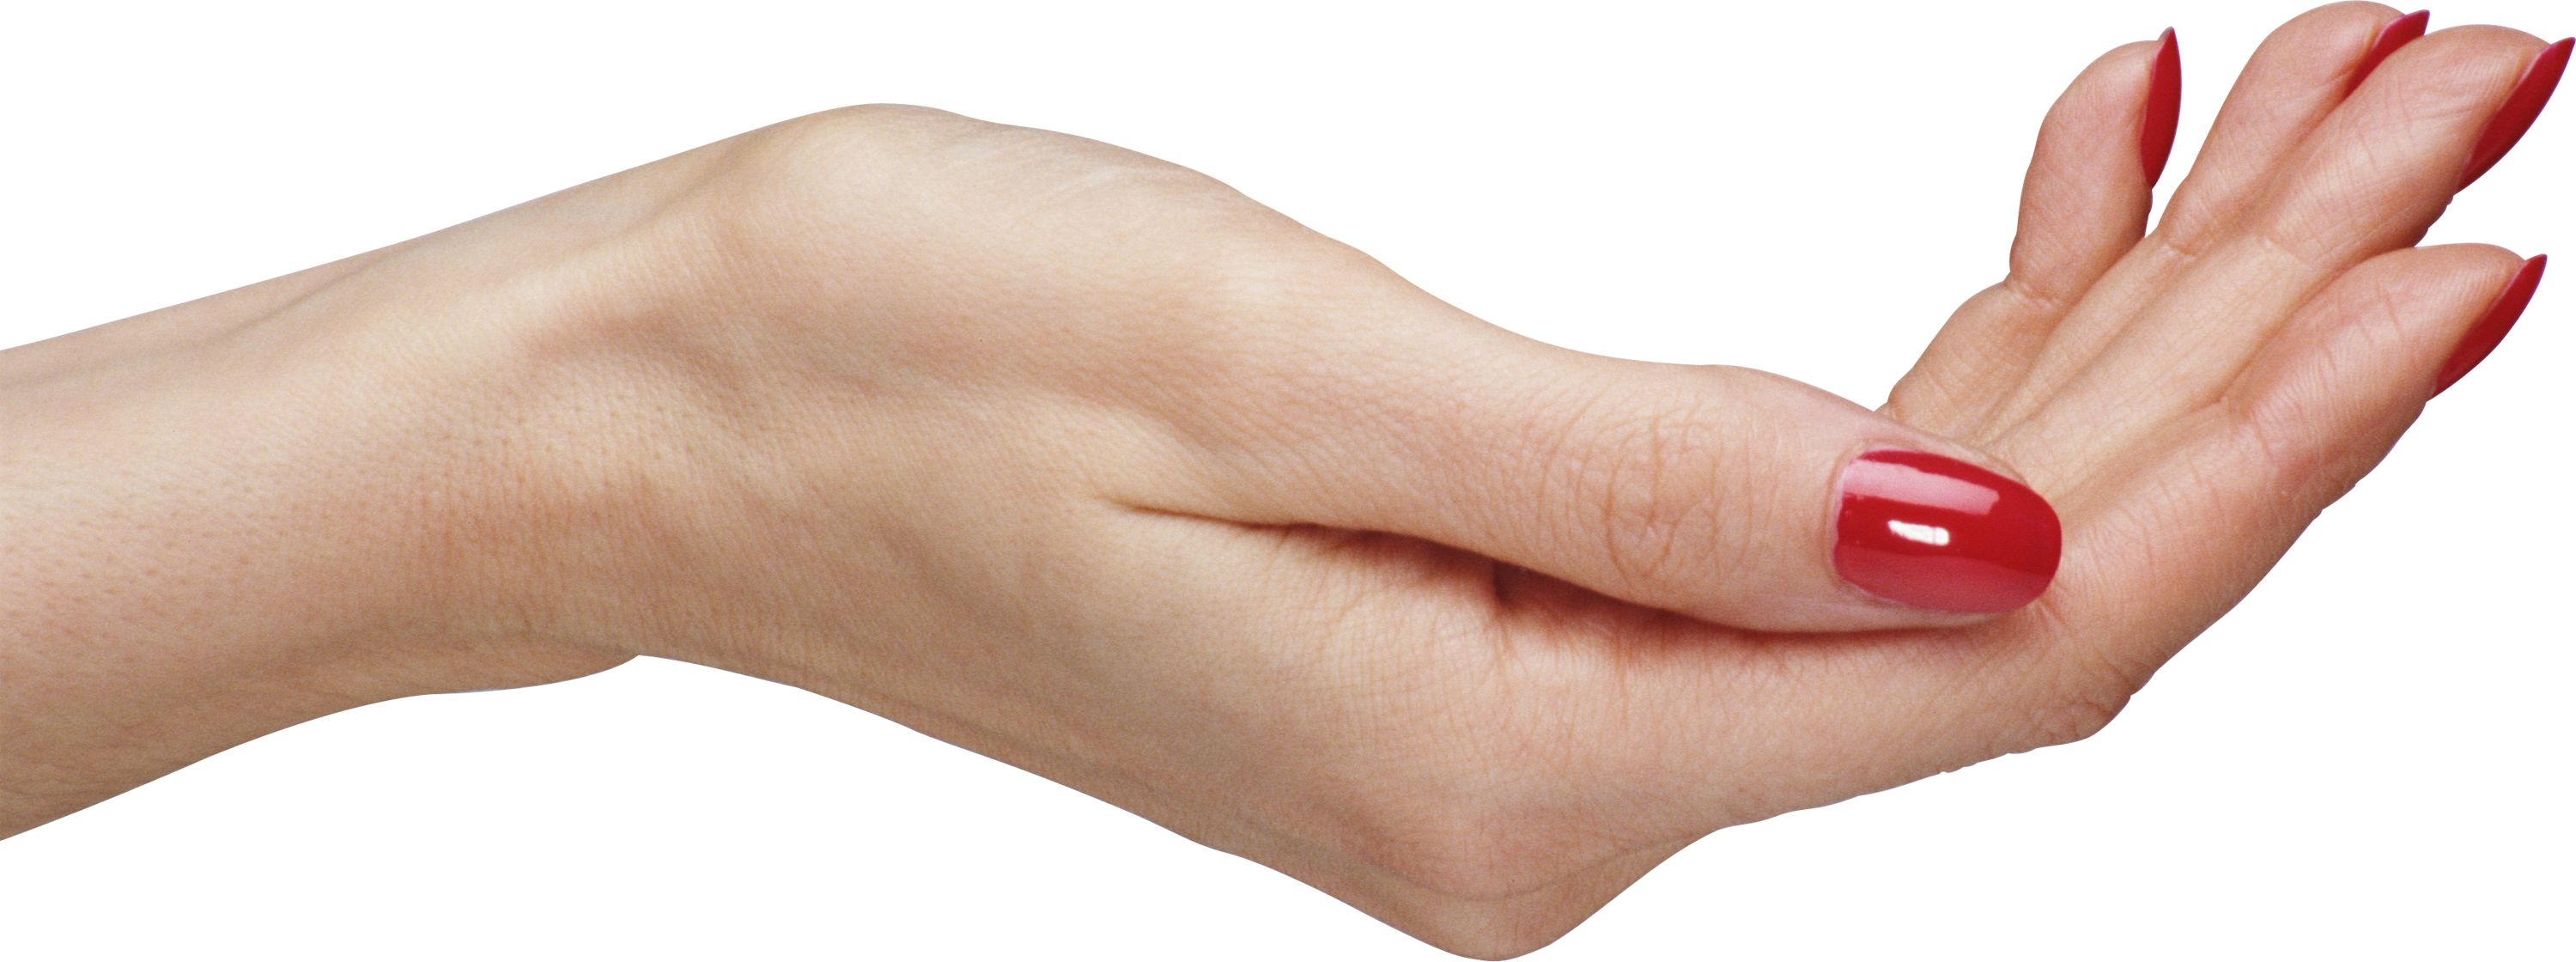 Palm hands PNG, hand image free